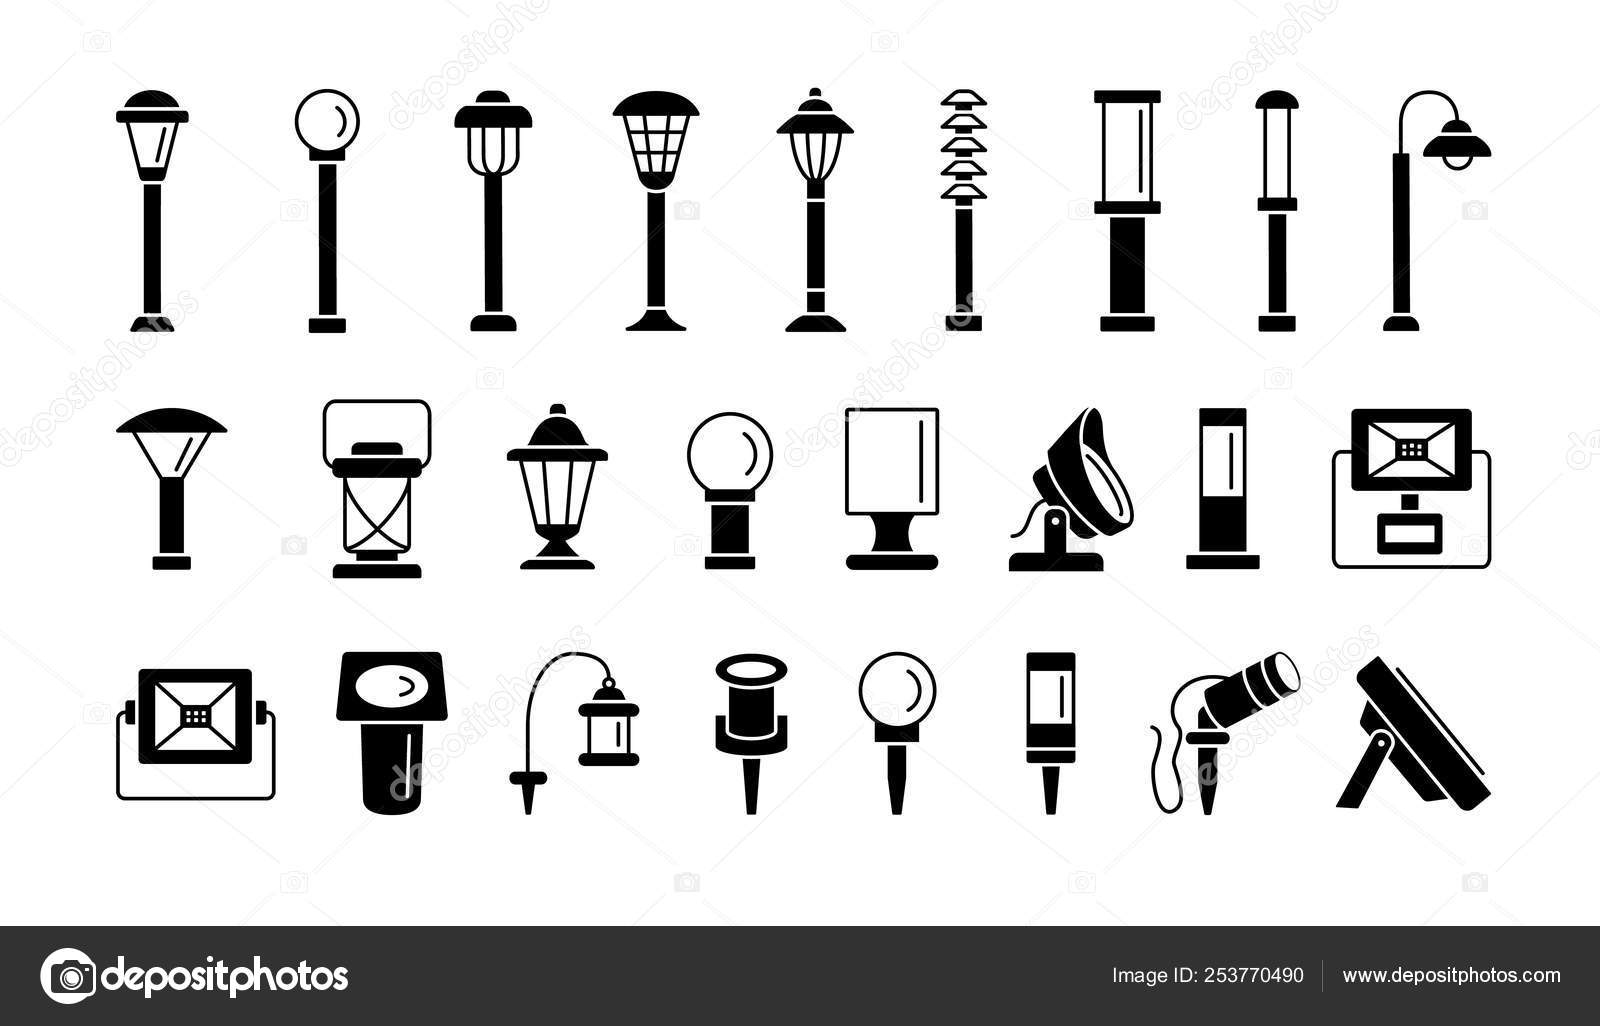 landscape path lights for patio deck yard outdoor garden lig stock vector c milta 253770490 landscape path lights for patio deck yard outdoor garden lig stock vector c milta 253770490